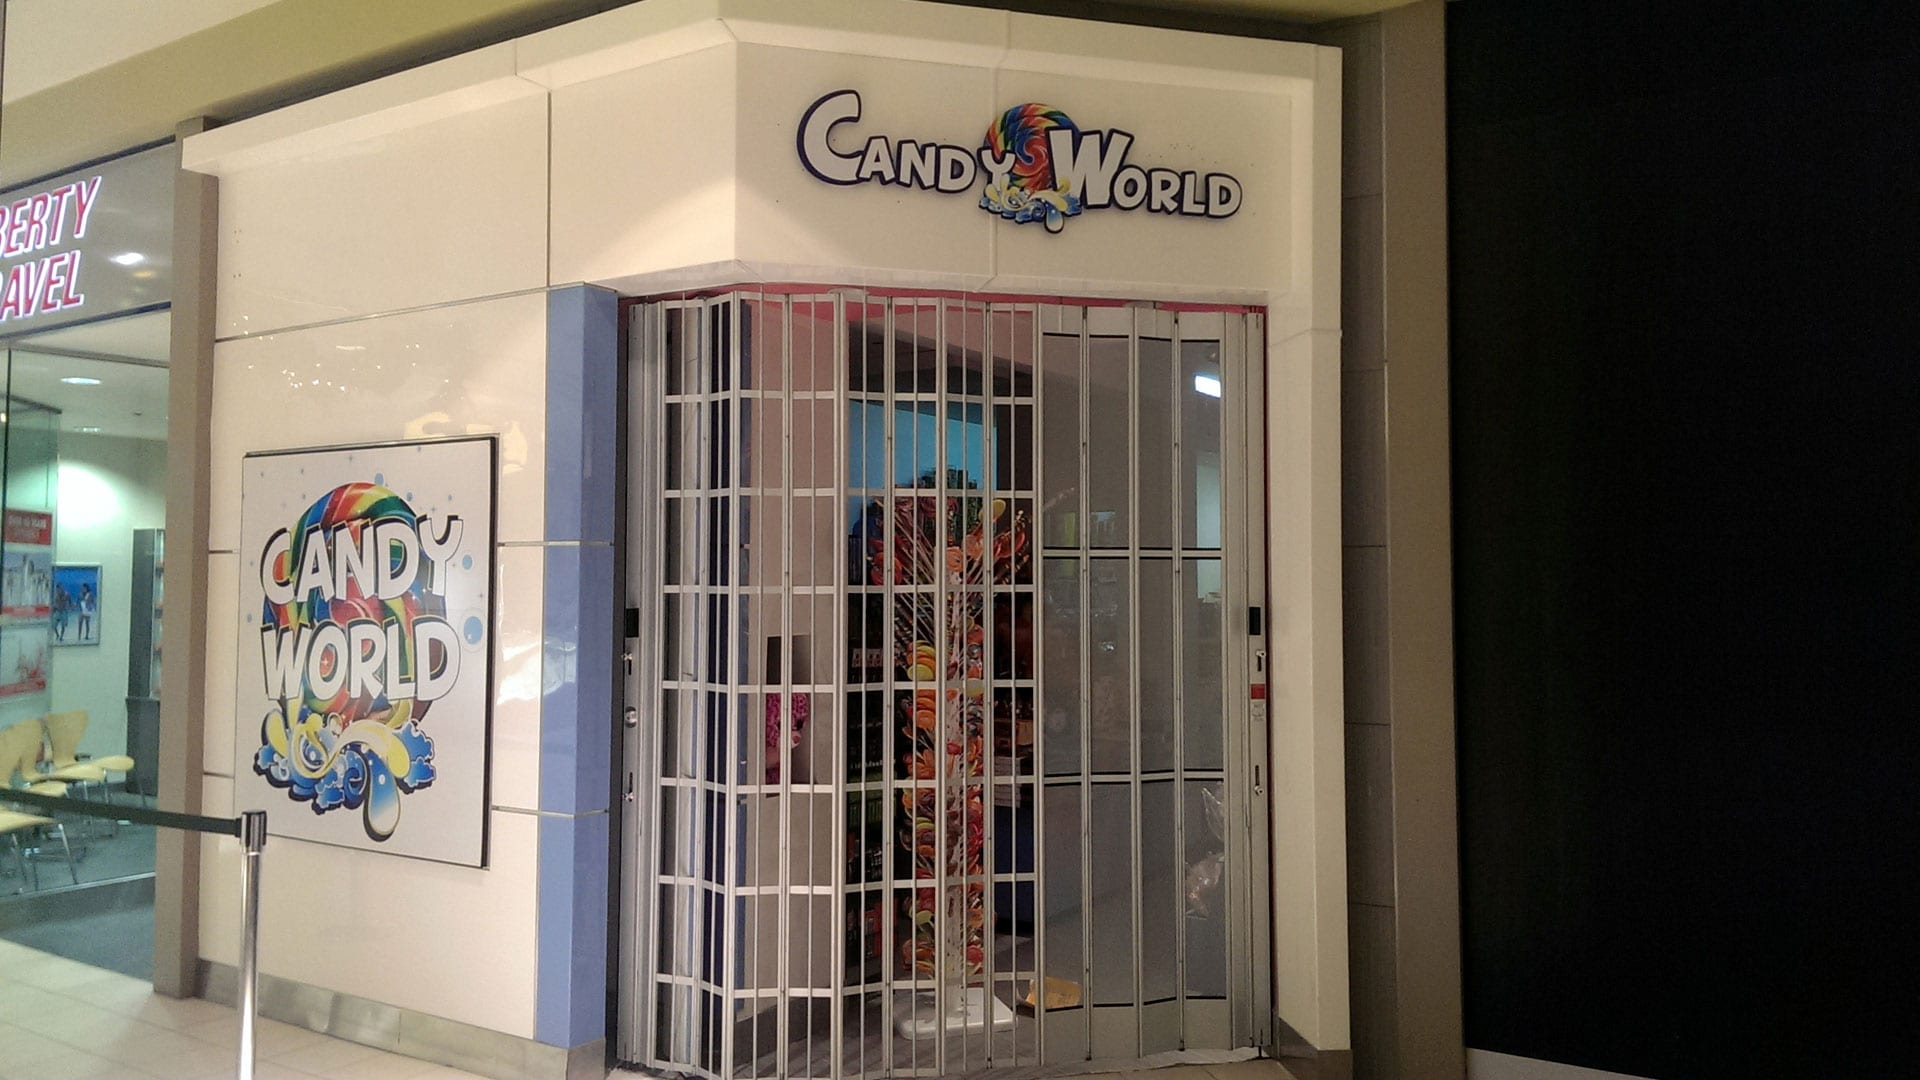 Interior wall sign for Candy World